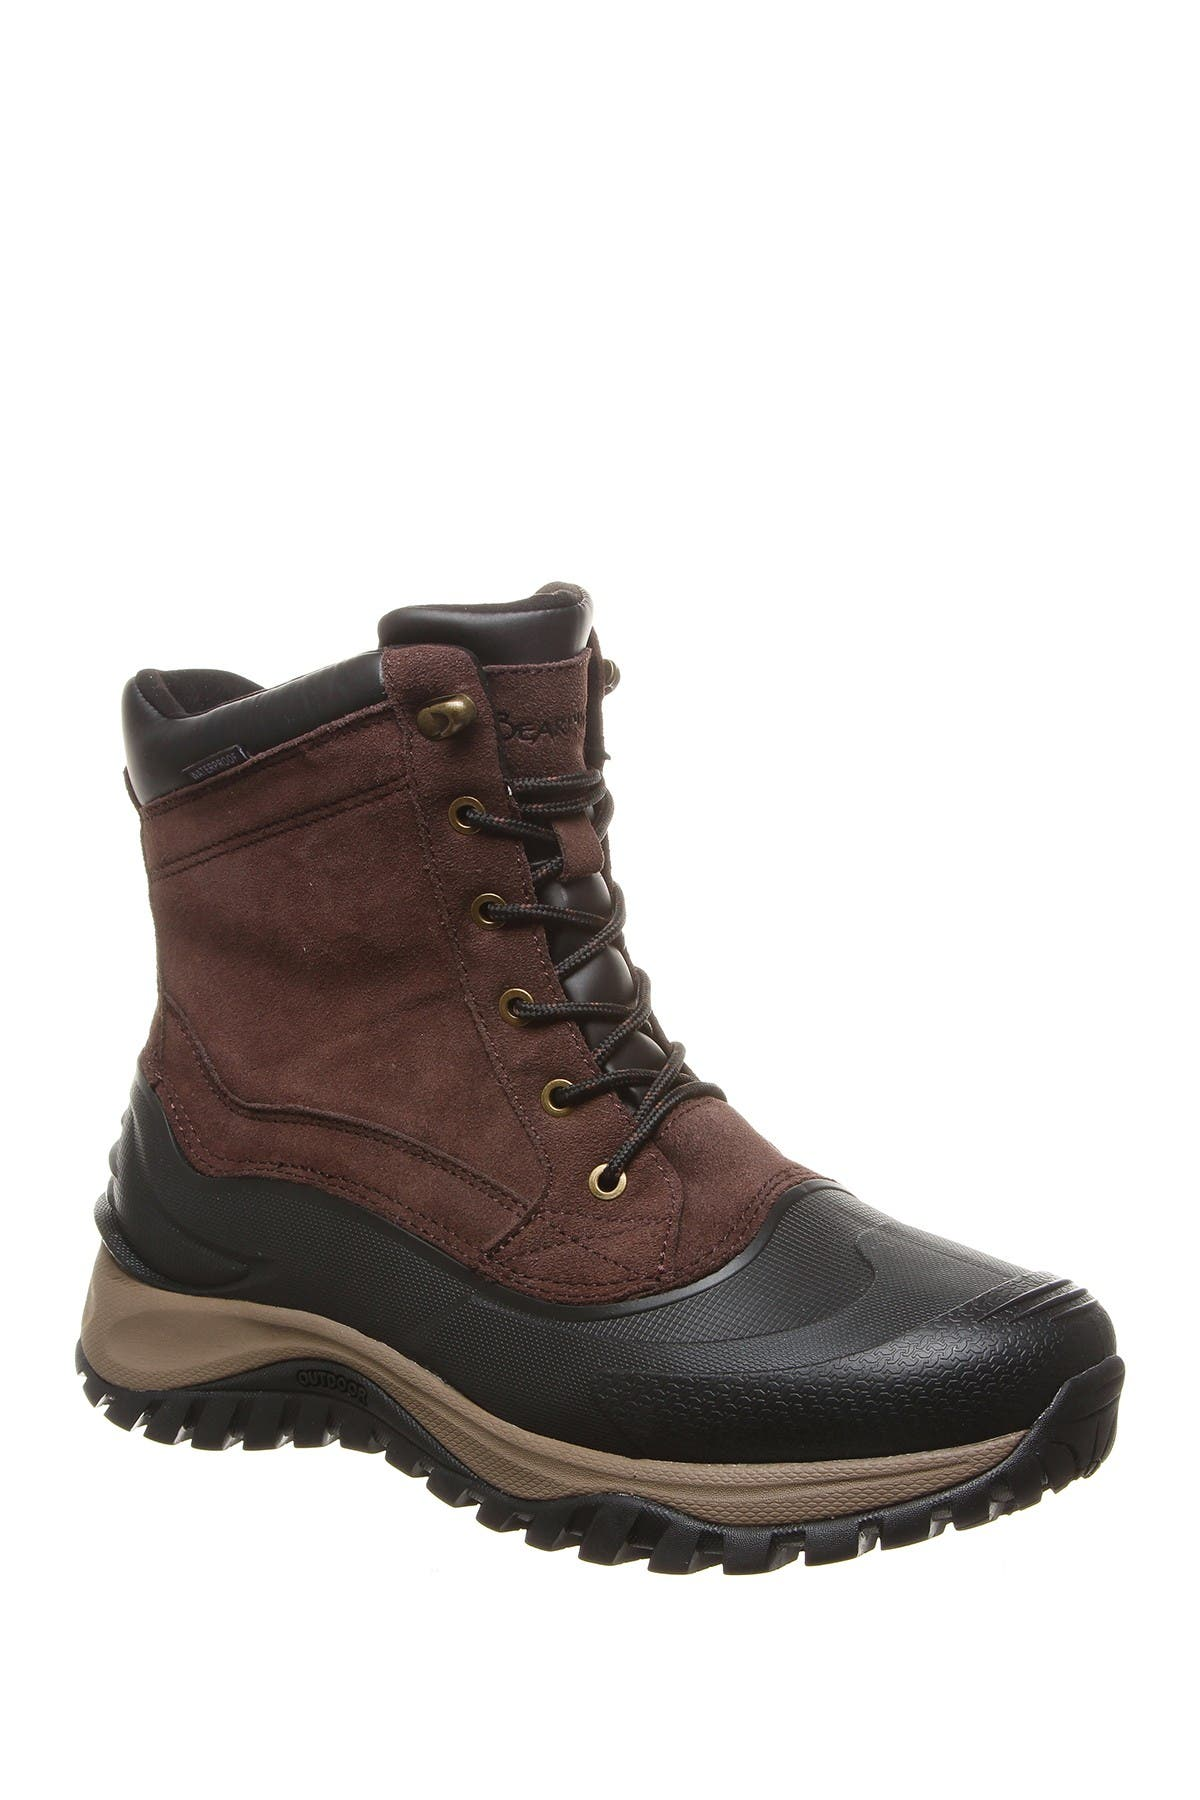 Image of BEARPAW Teton Waterproof Boot